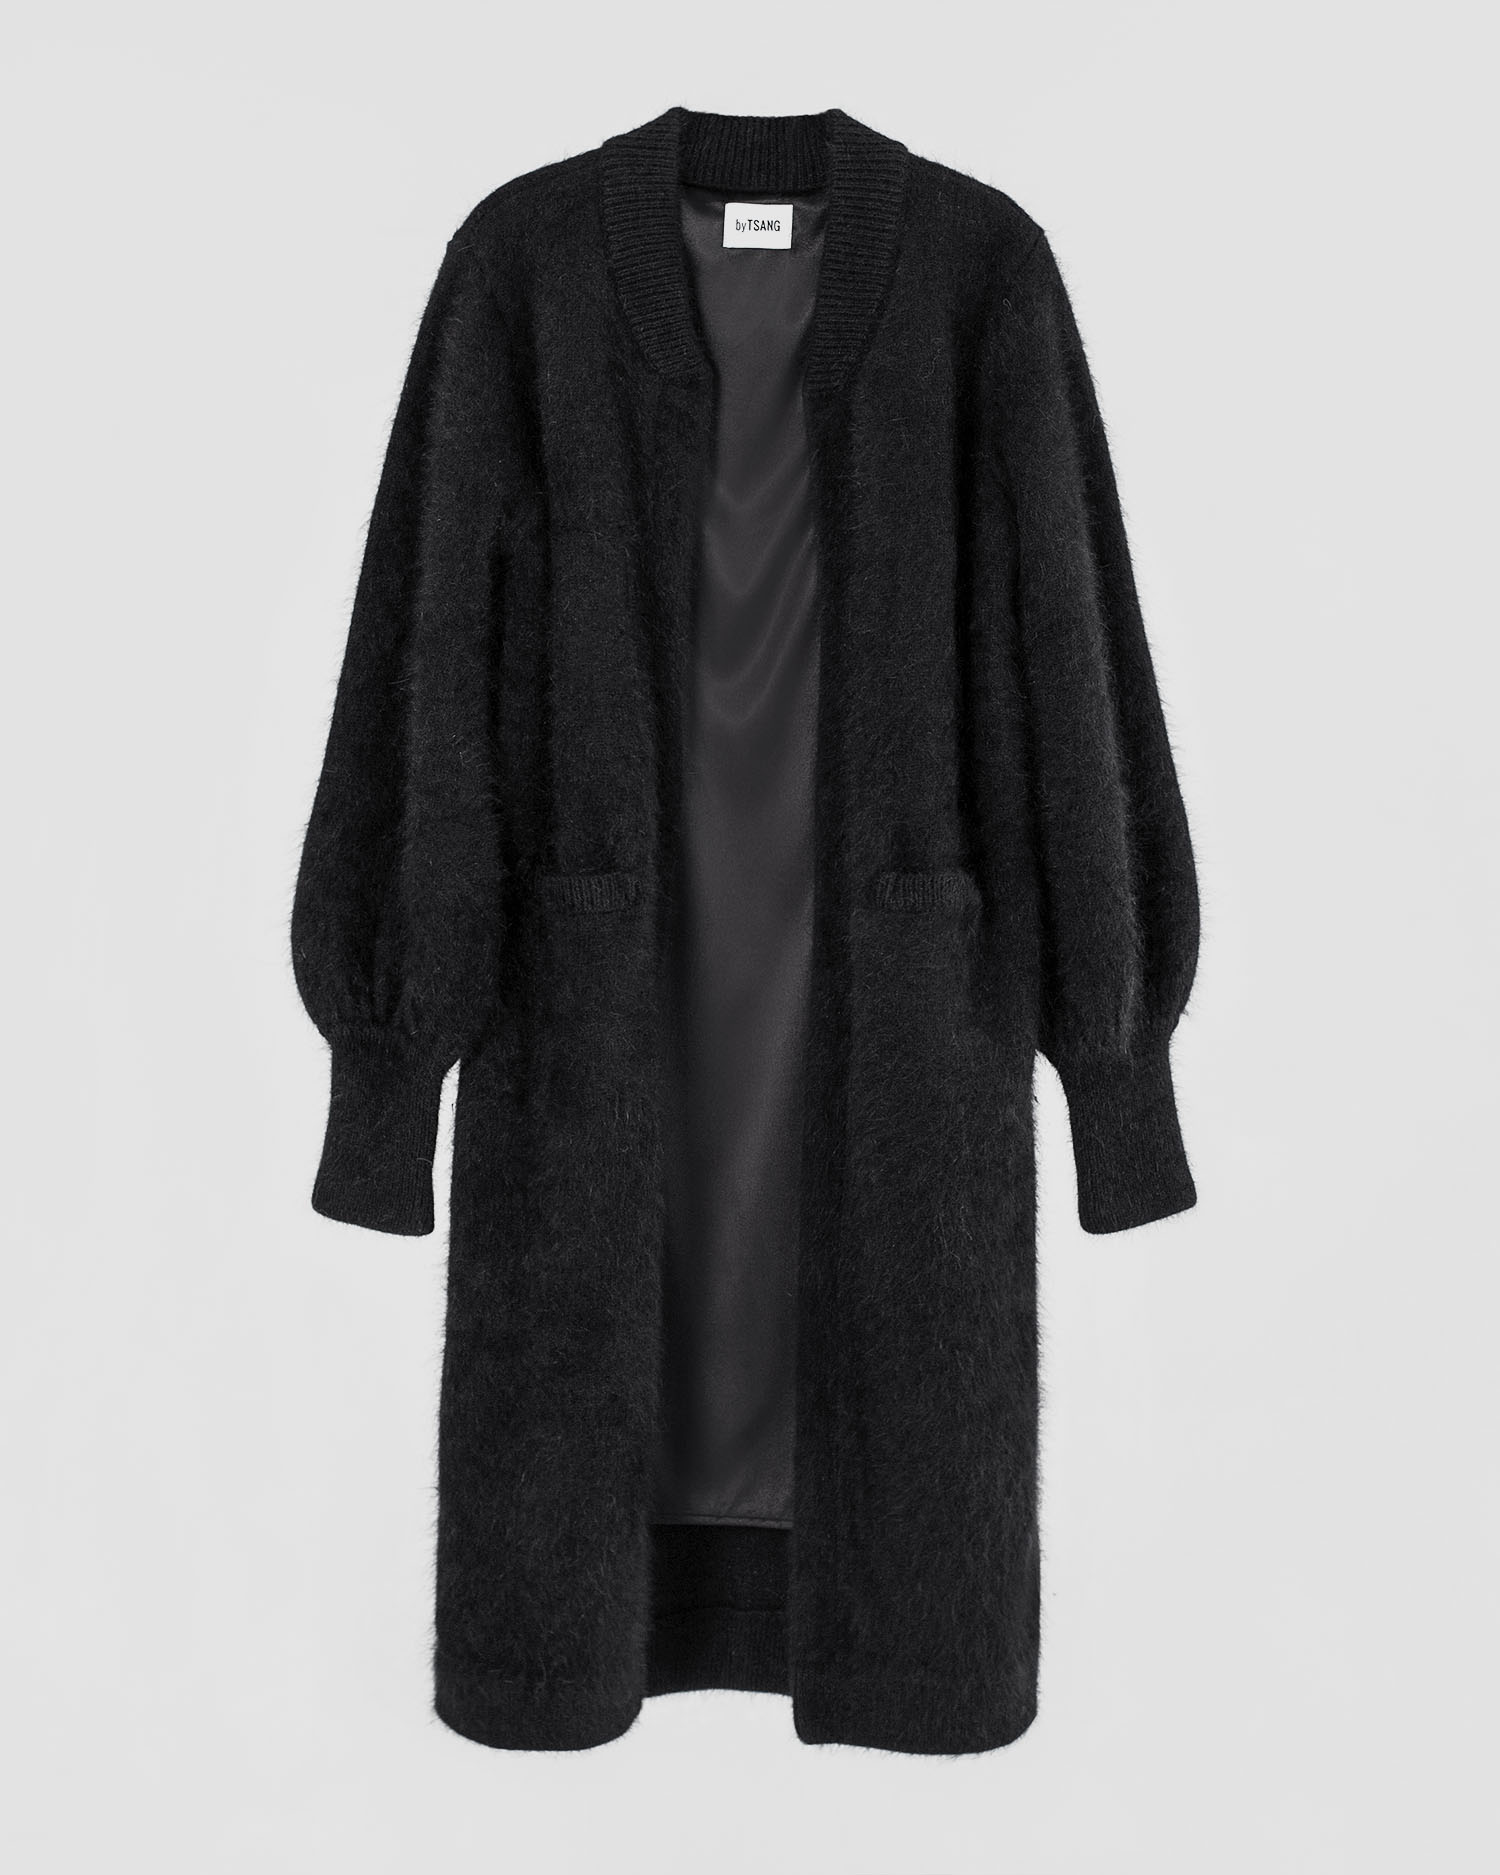 byTSANG season II fuzzy cardigan coat in midnight black